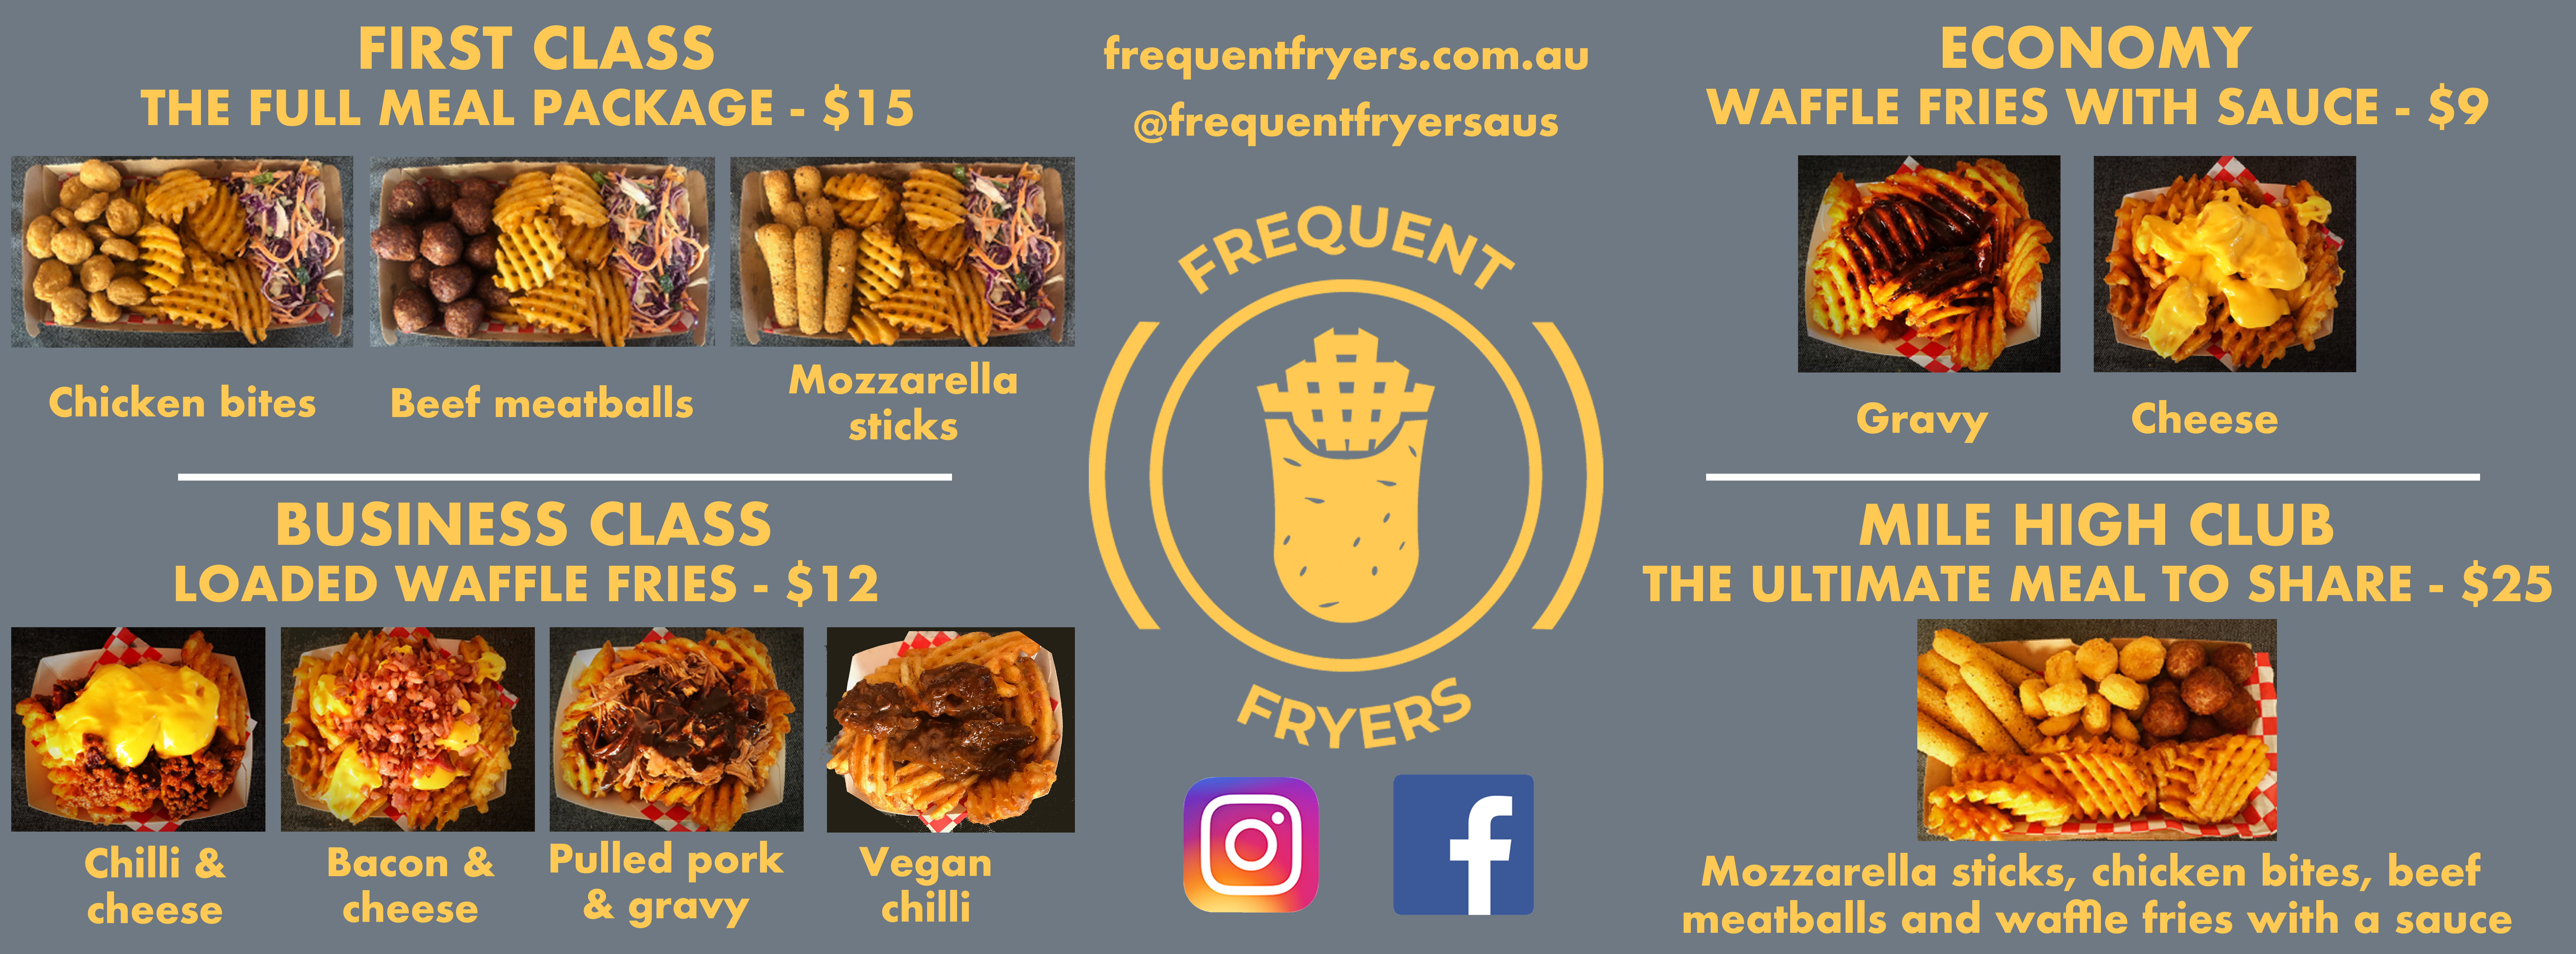 Frequent Fryers Menu